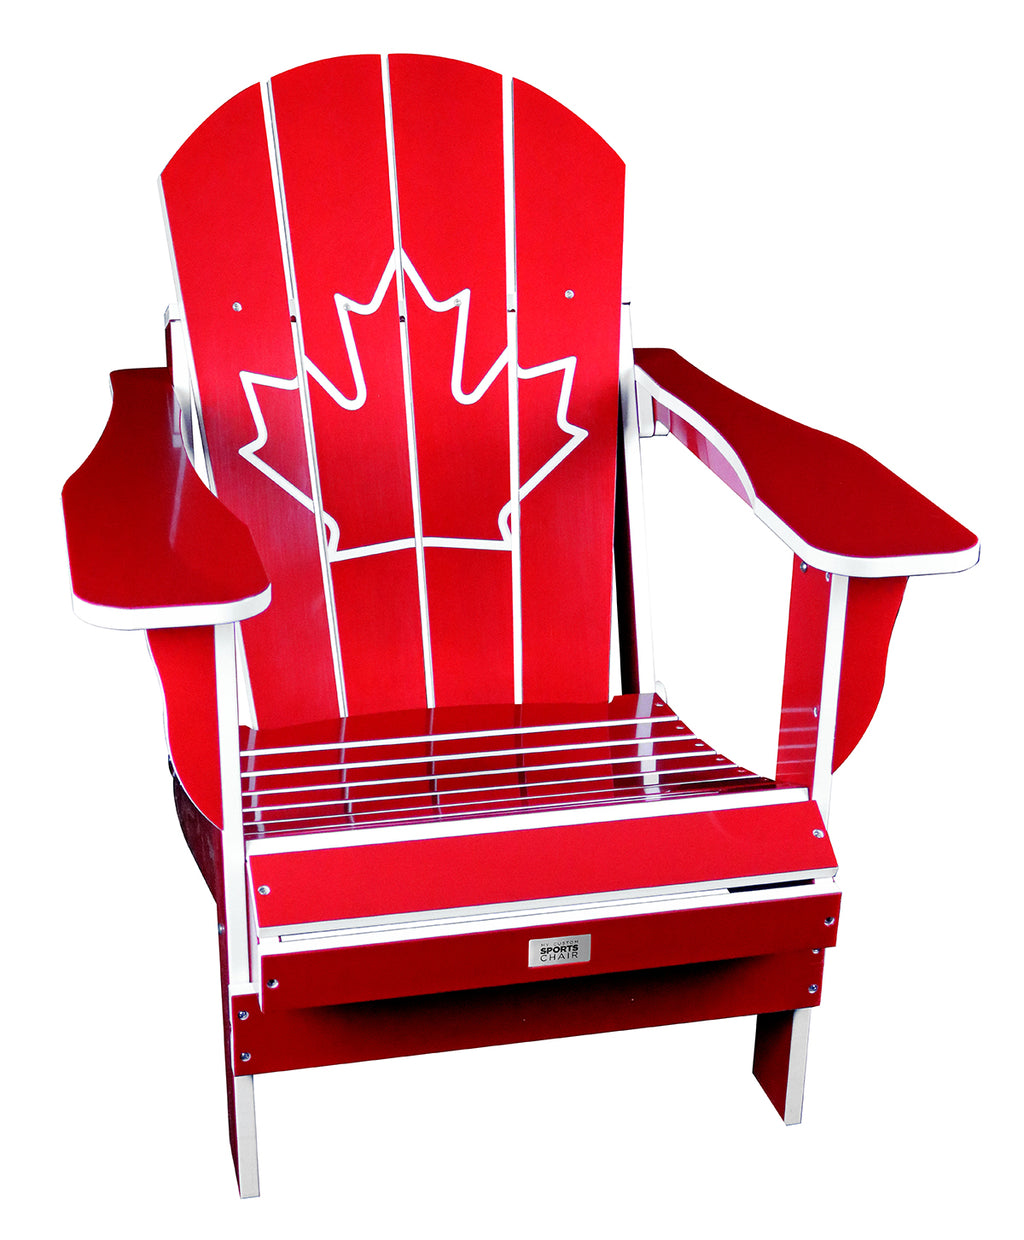 TL Red/White Canada Folding